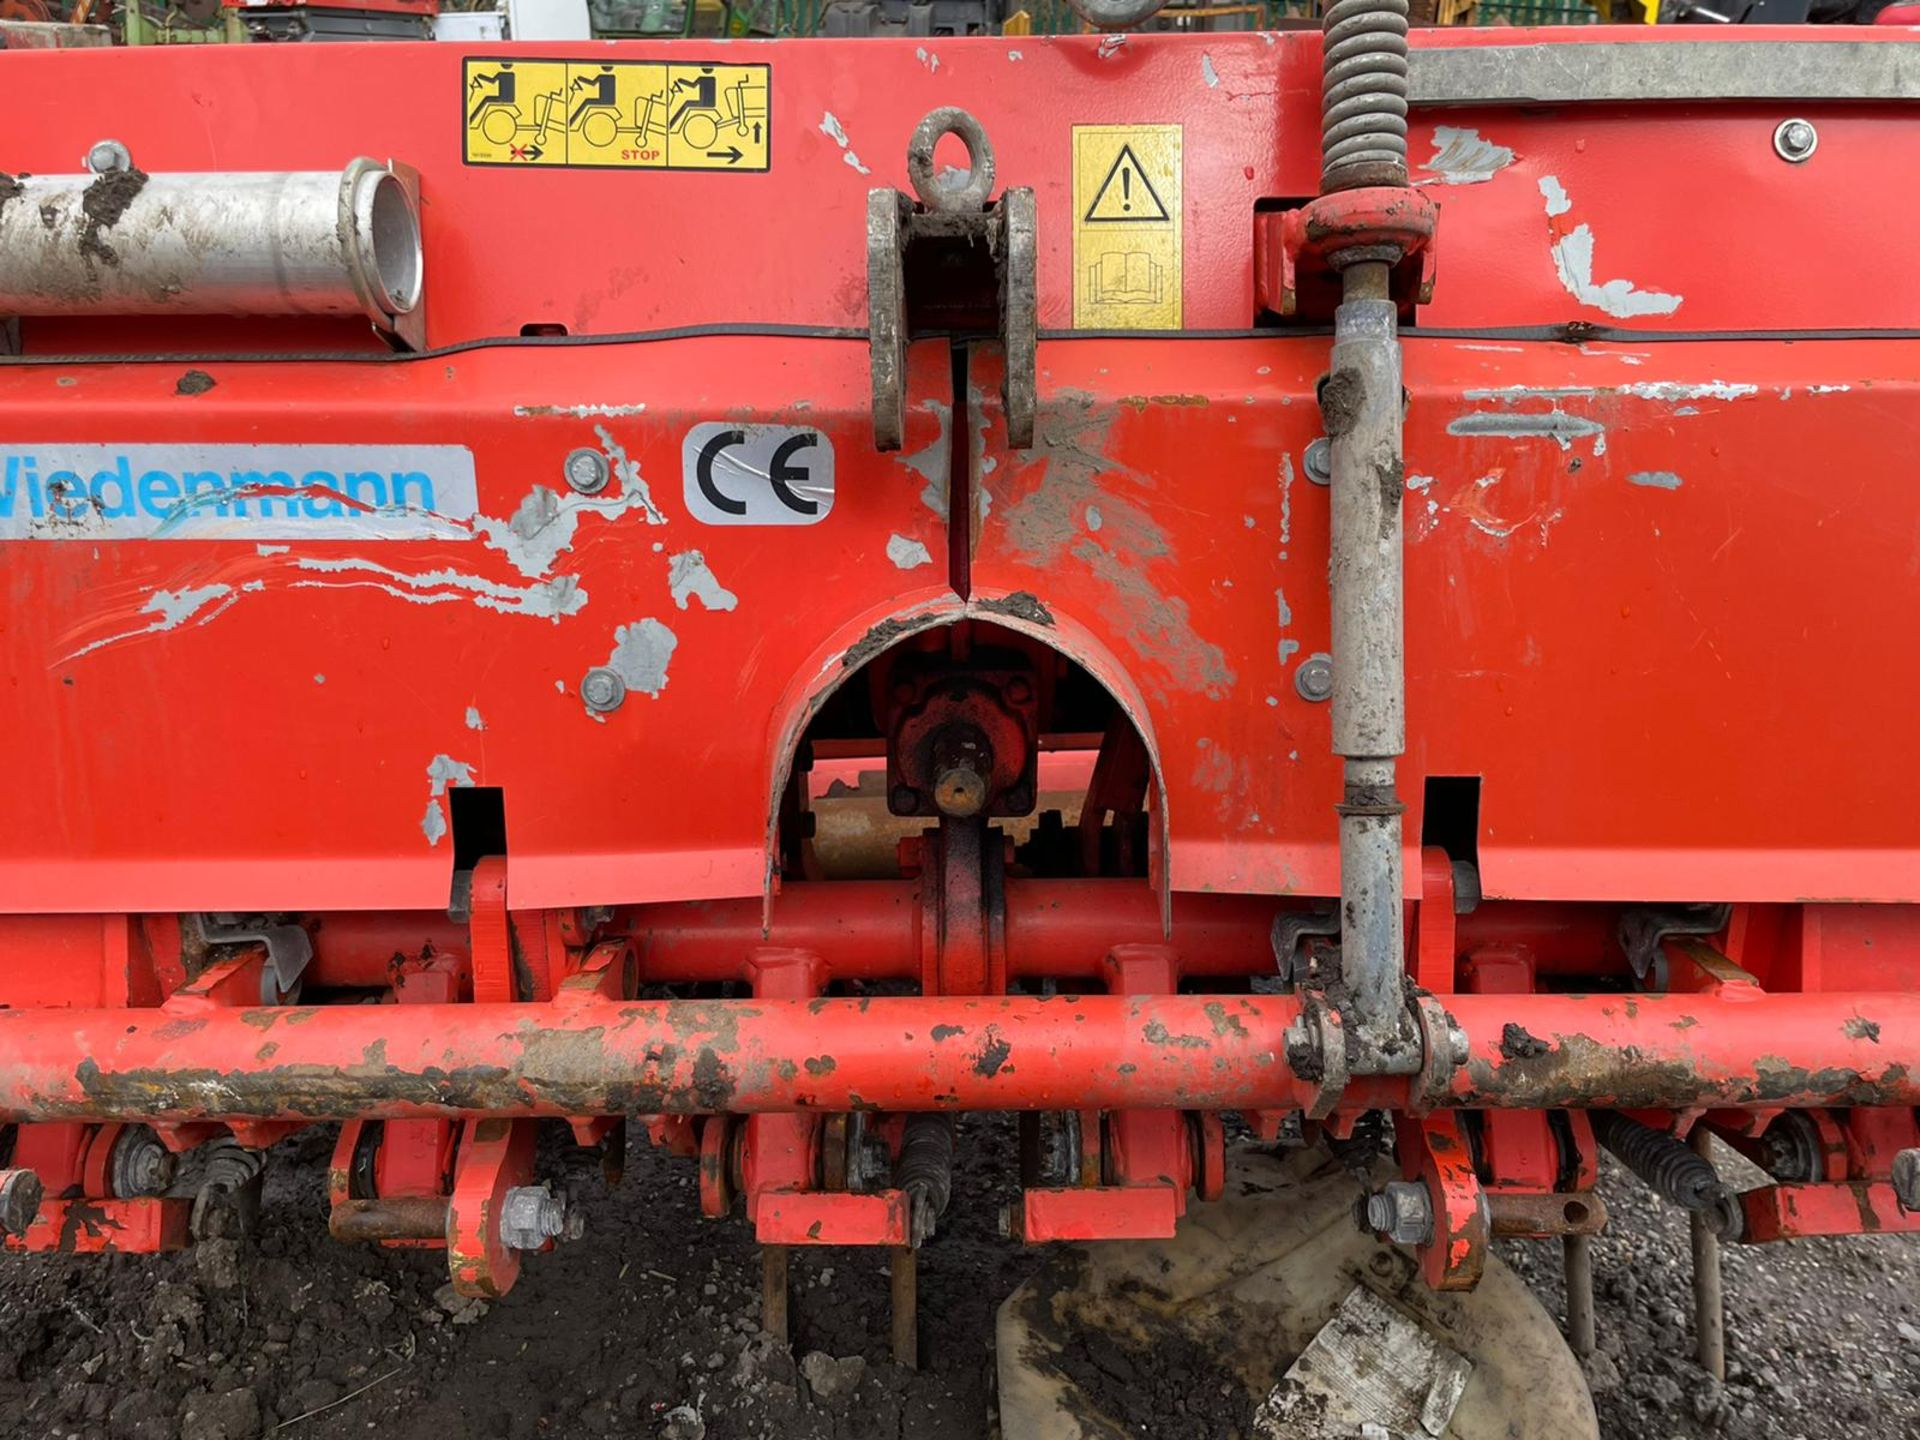 Weidenmann Terra Spike G6/135 Aerator, Suitable For 3 Point Linkage, PTO driven,all teeth are there - Image 4 of 4